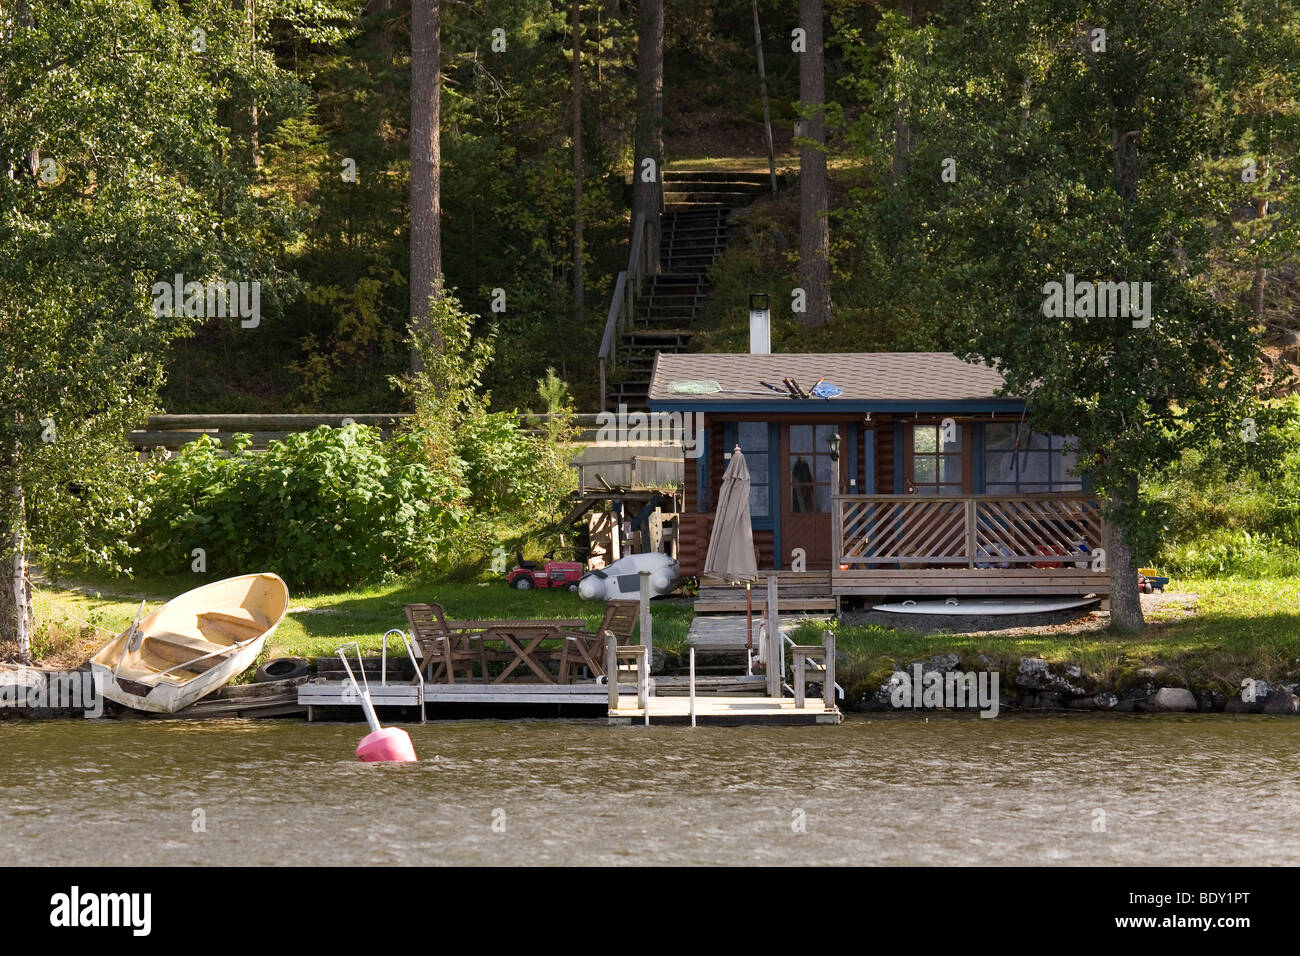 A traditional Finnish Summer Cottage by the banks of Lake Rautavasi, close to the Finnish town of Vammala in the - Stock Image